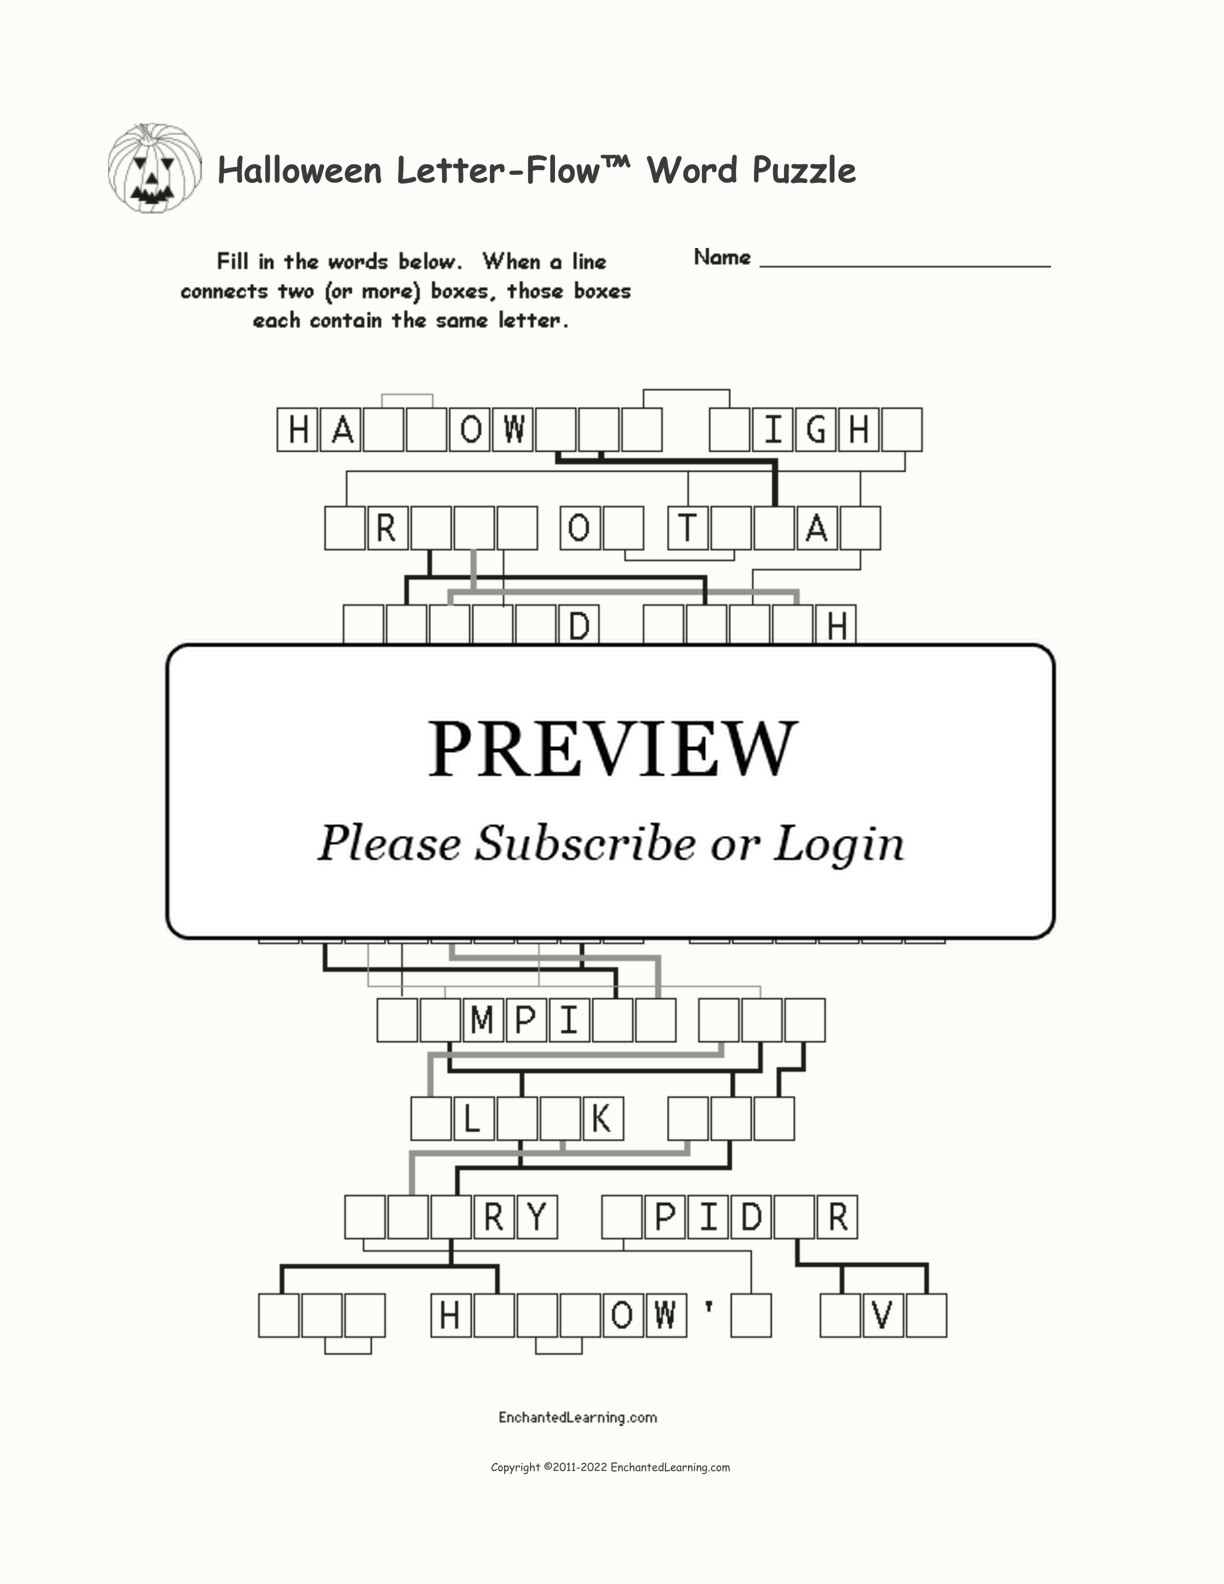 Halloween Letter-Flow™ Word Puzzle interactive worksheet page 1